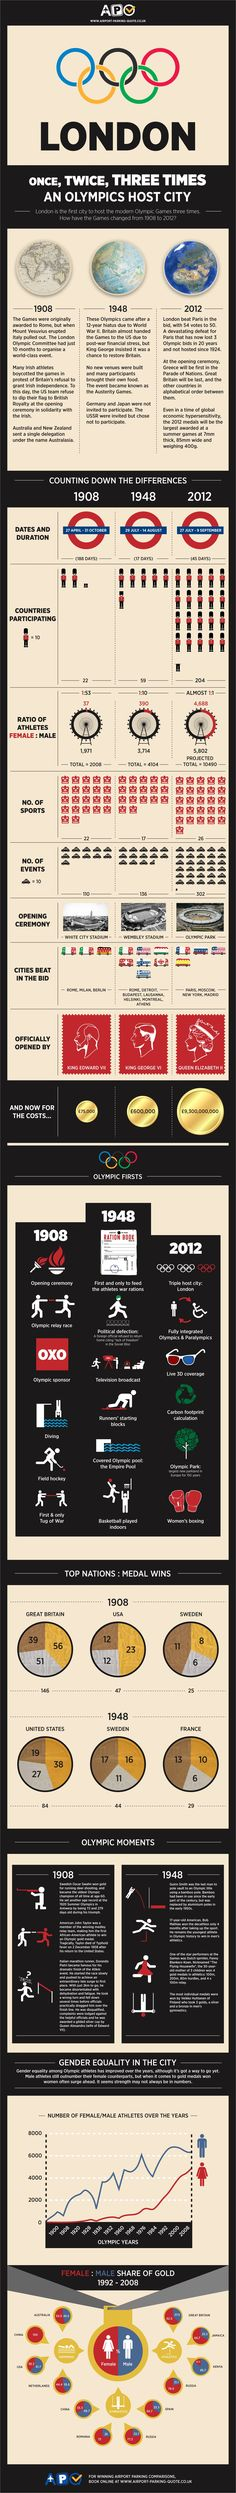 Infographics on LONDON OLYMPICS 2012 | AnimHuT